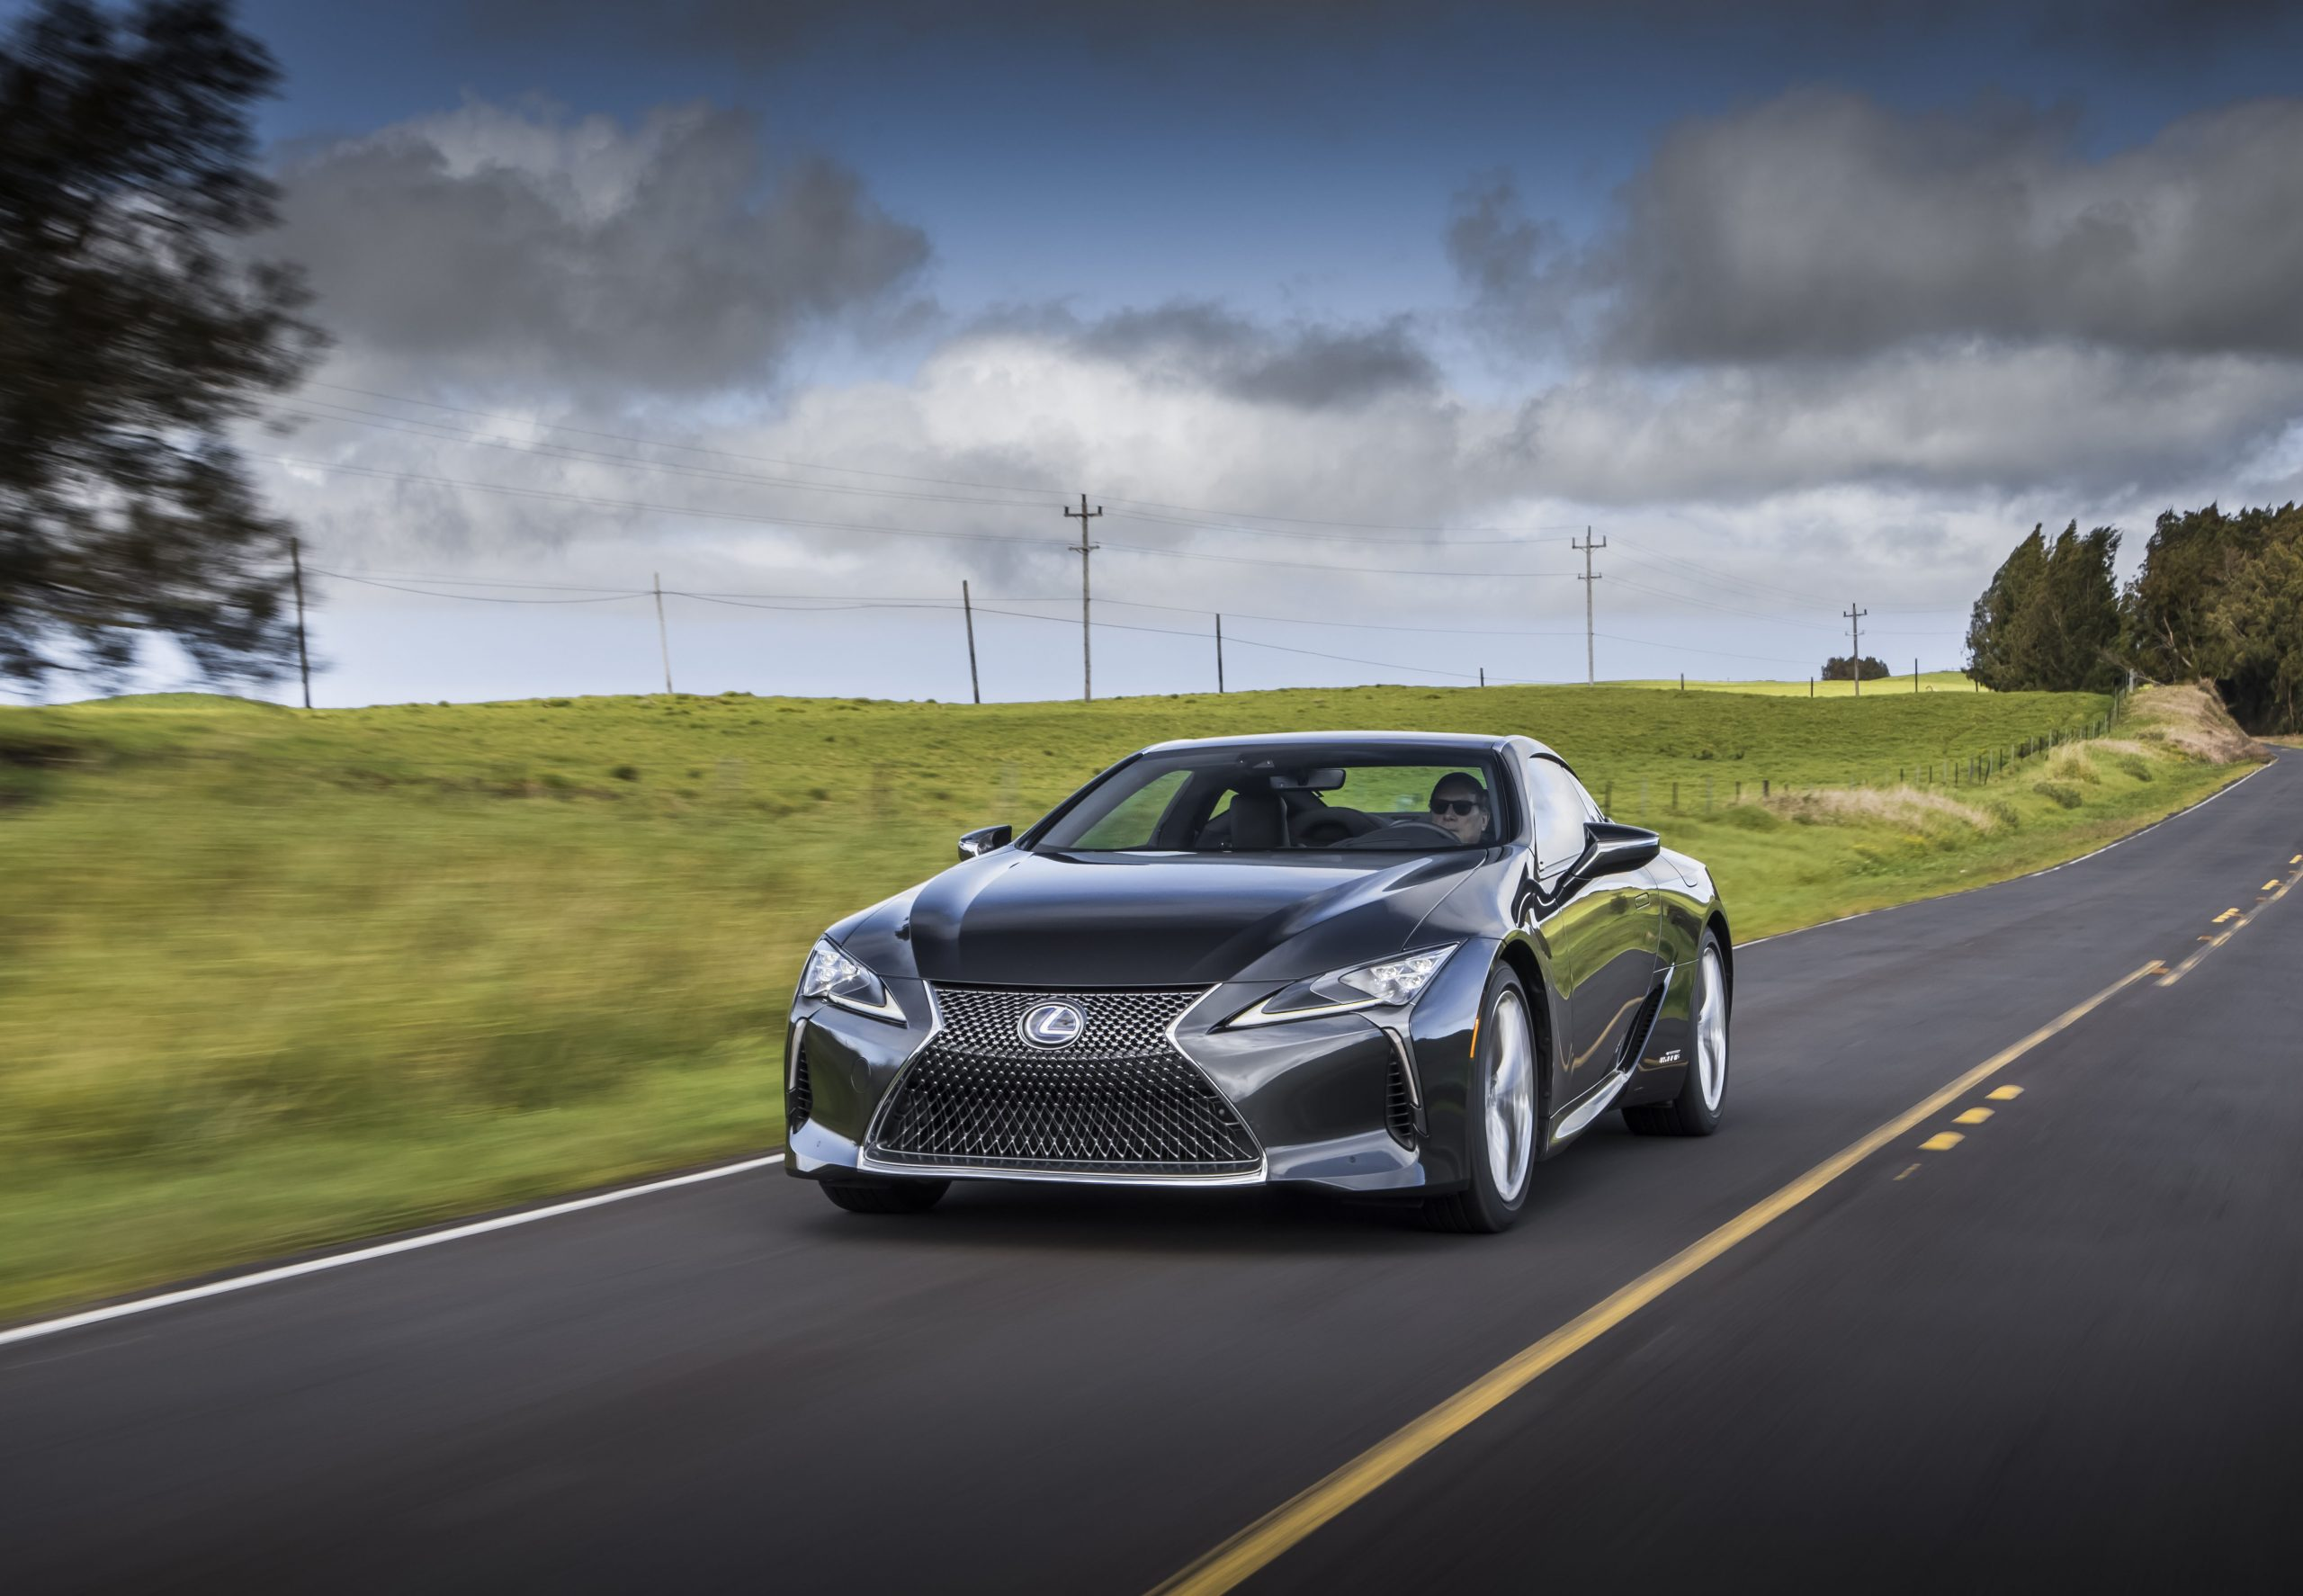 2021 lexus lc 500 and lc 500h receive modest updates and